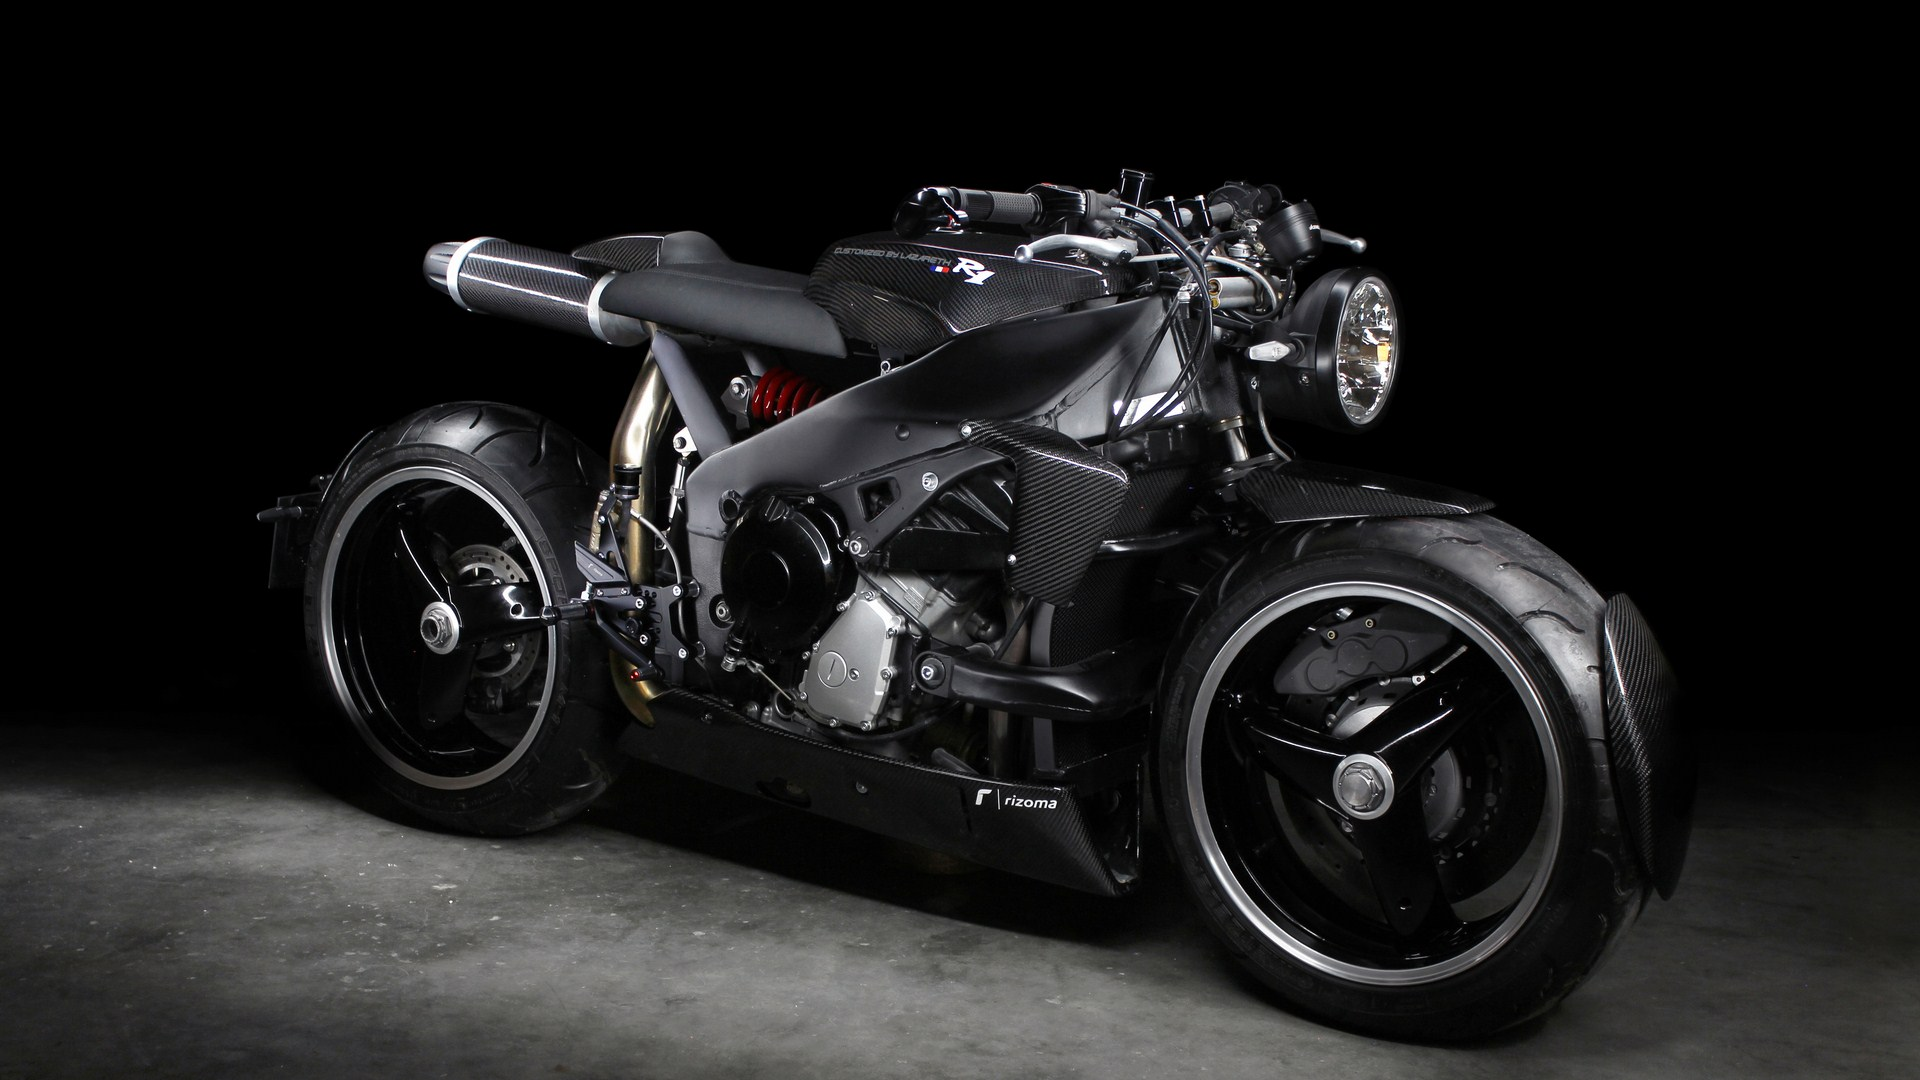 Lazareth - Caferacer - Yamaha R1 - Back to the future (6) (Copier)